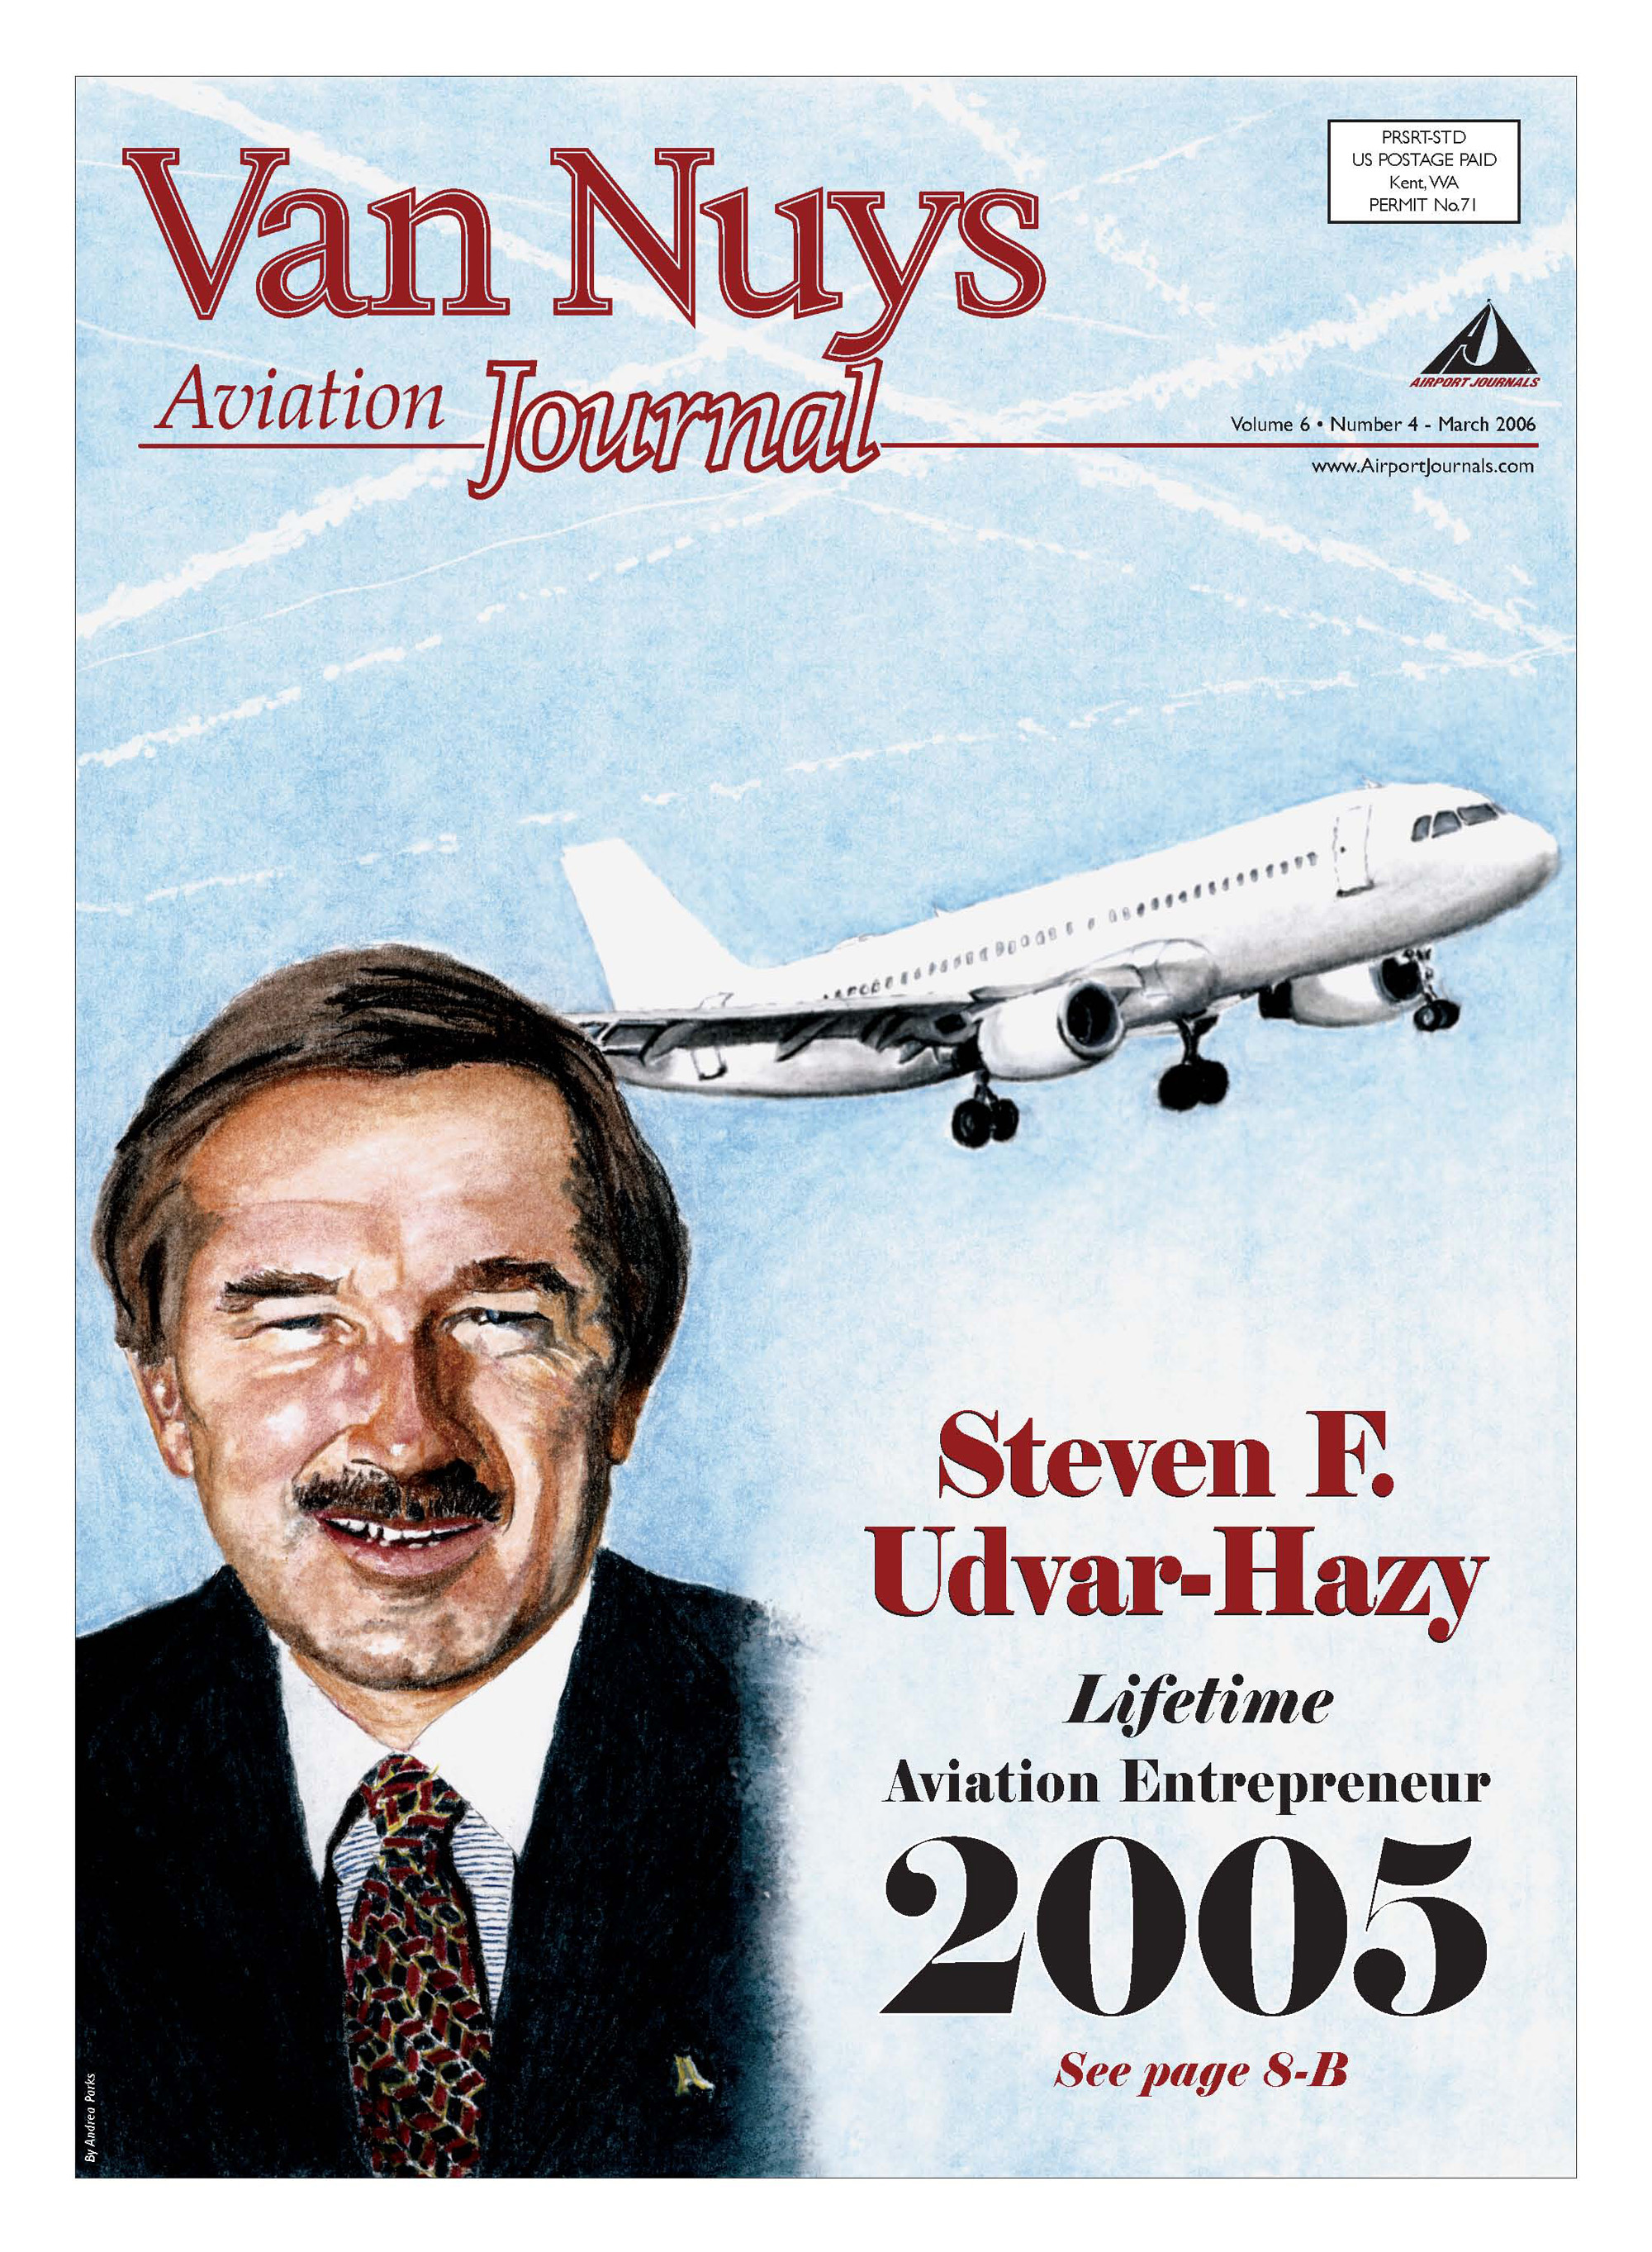 Steven F. Udvar-Hazy: Committed to Good Causes